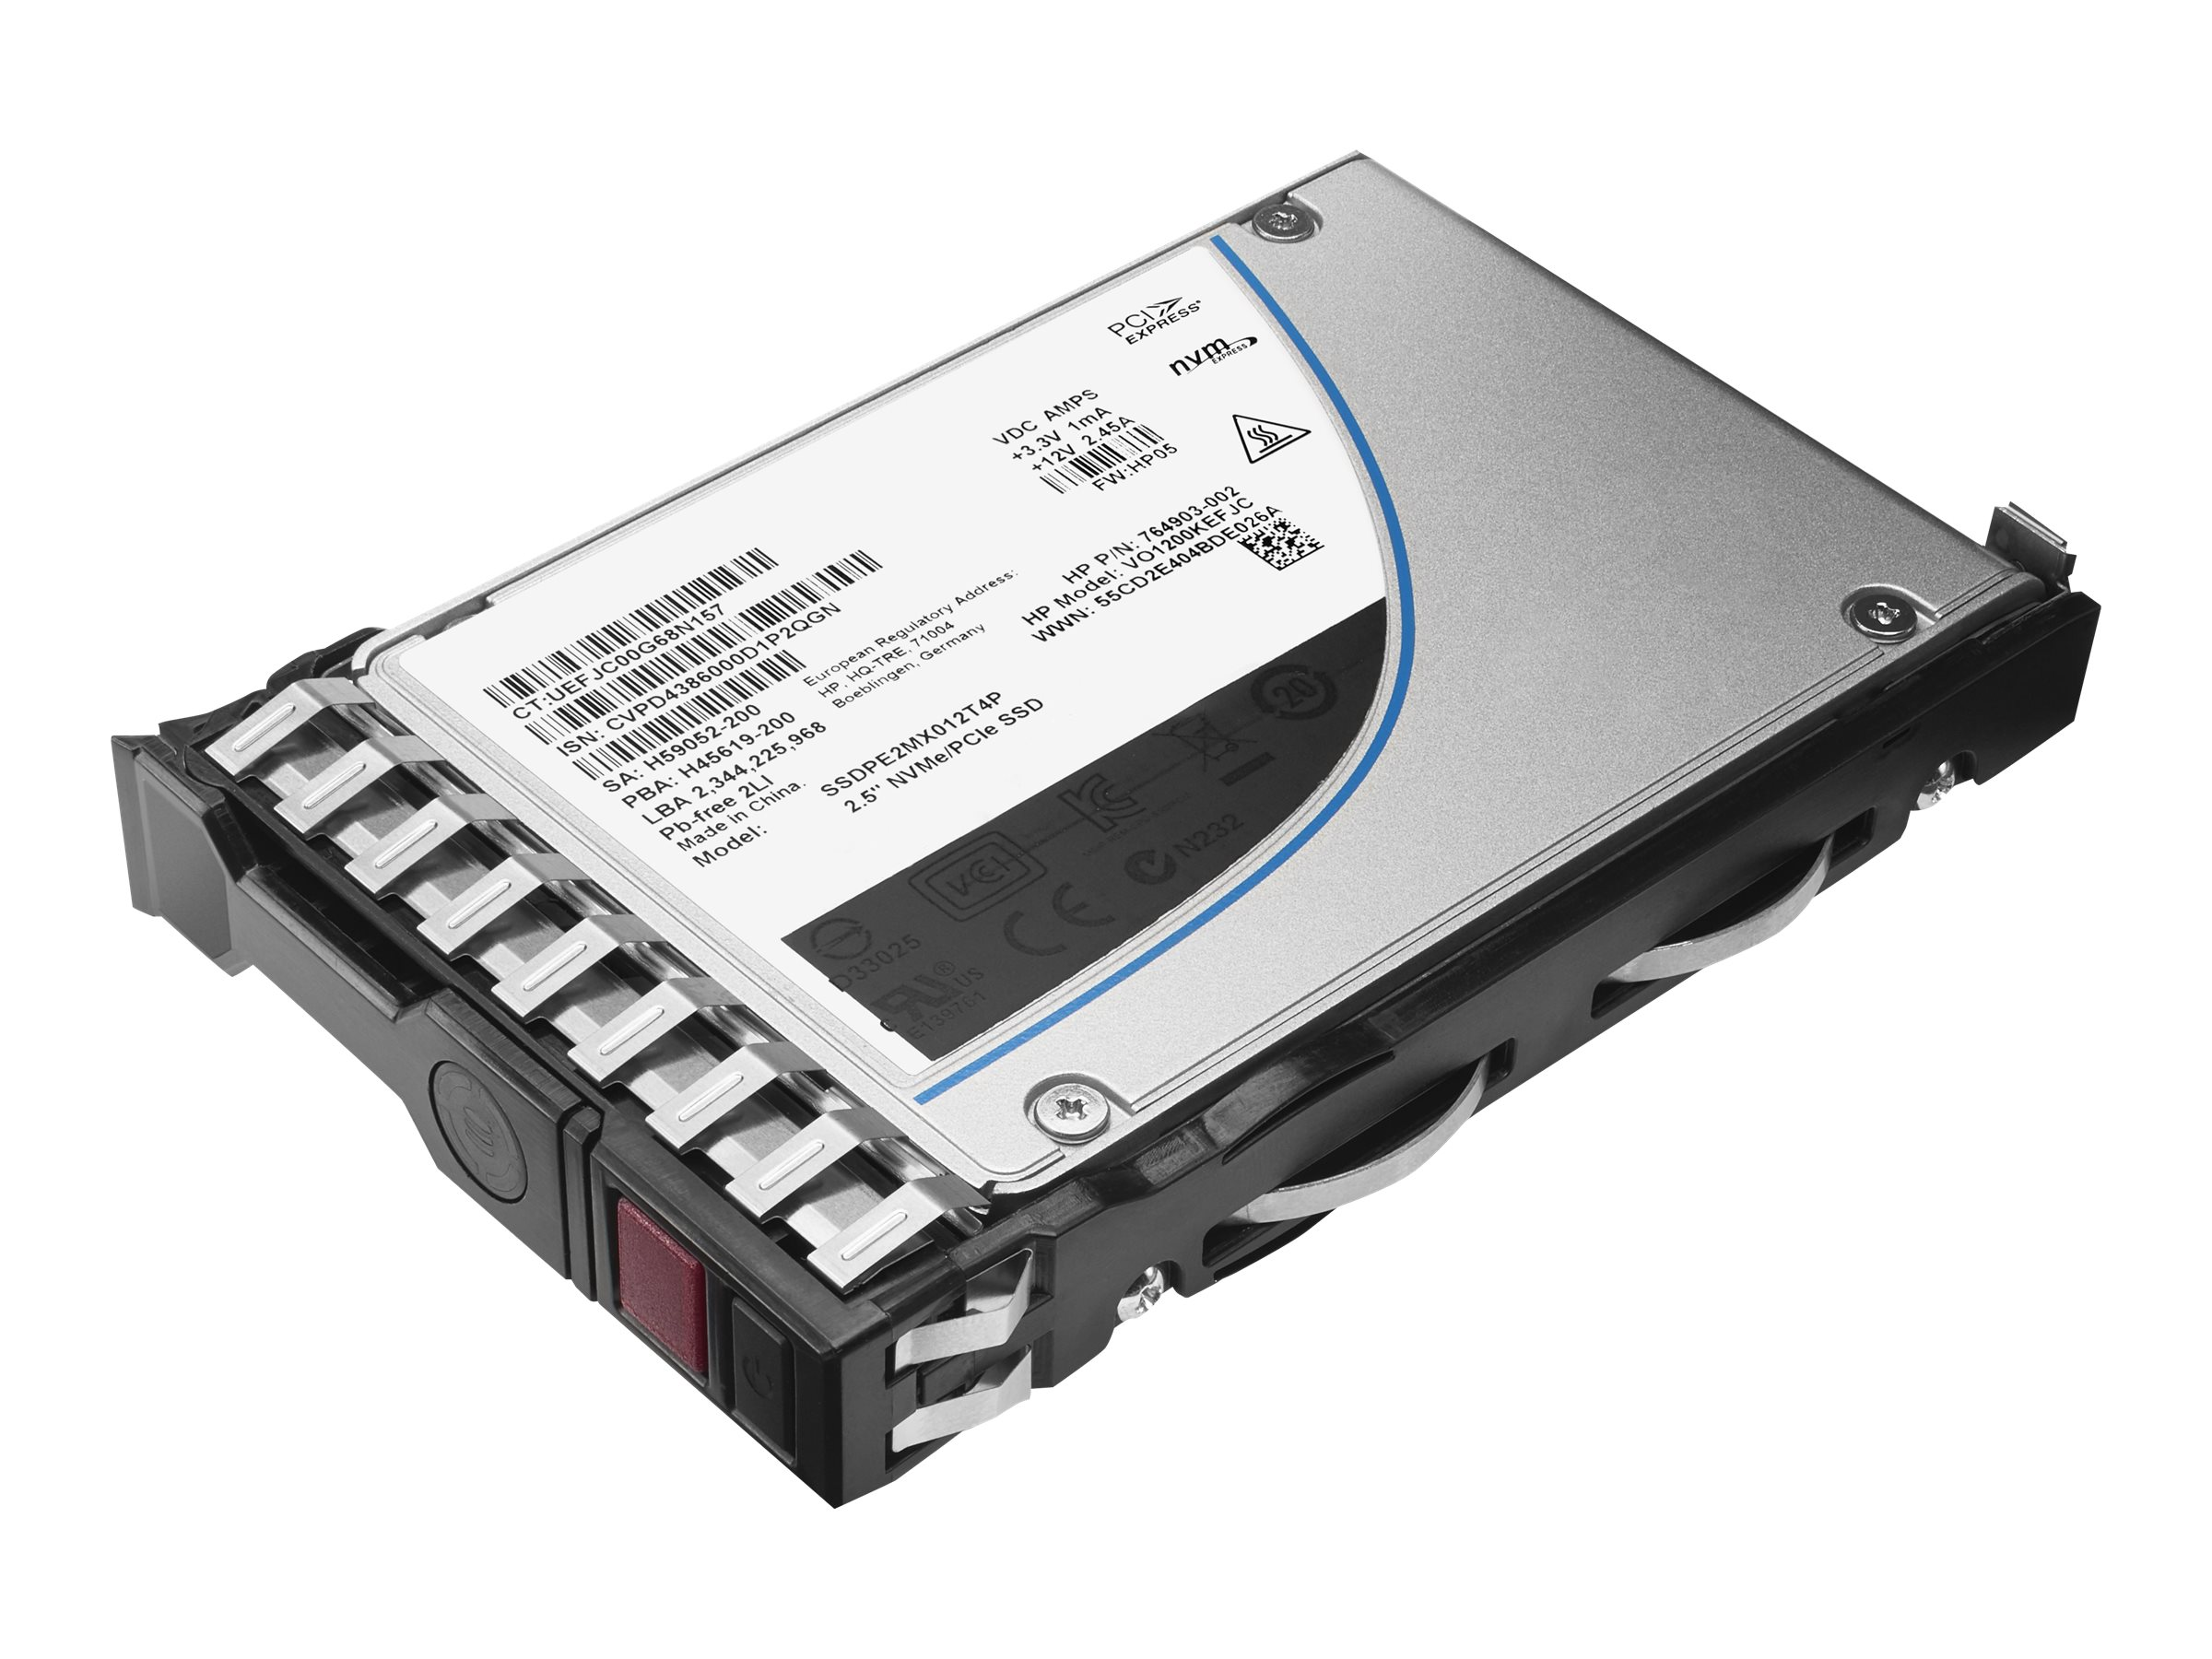 HPE 240GB SATA 6Gb s Value Endurance LFF 3.5 SC Converter Enterprise Value G1 Solid State Drive, 756639-B21, 18363820, Solid State Drives - Internal